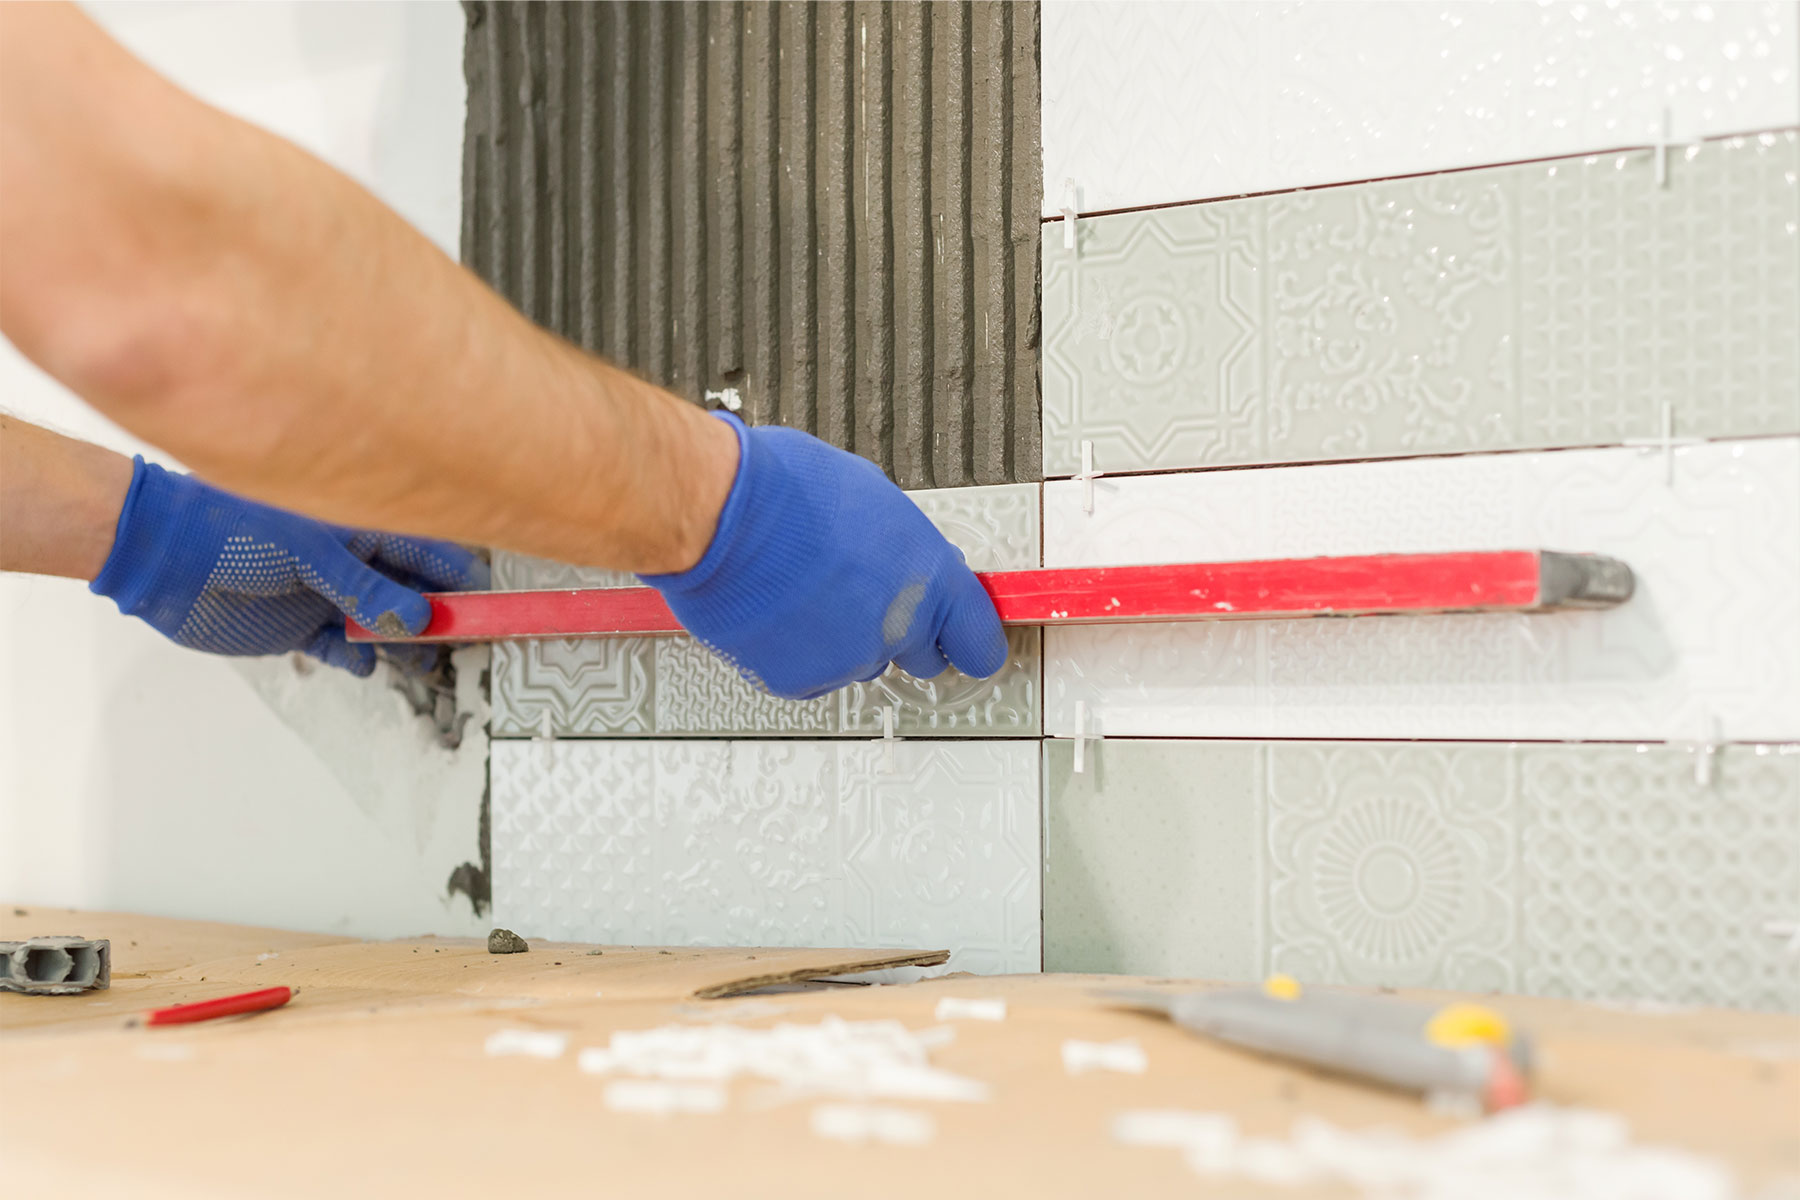 Set tile spacers and use a grout float to ensure everything is even.